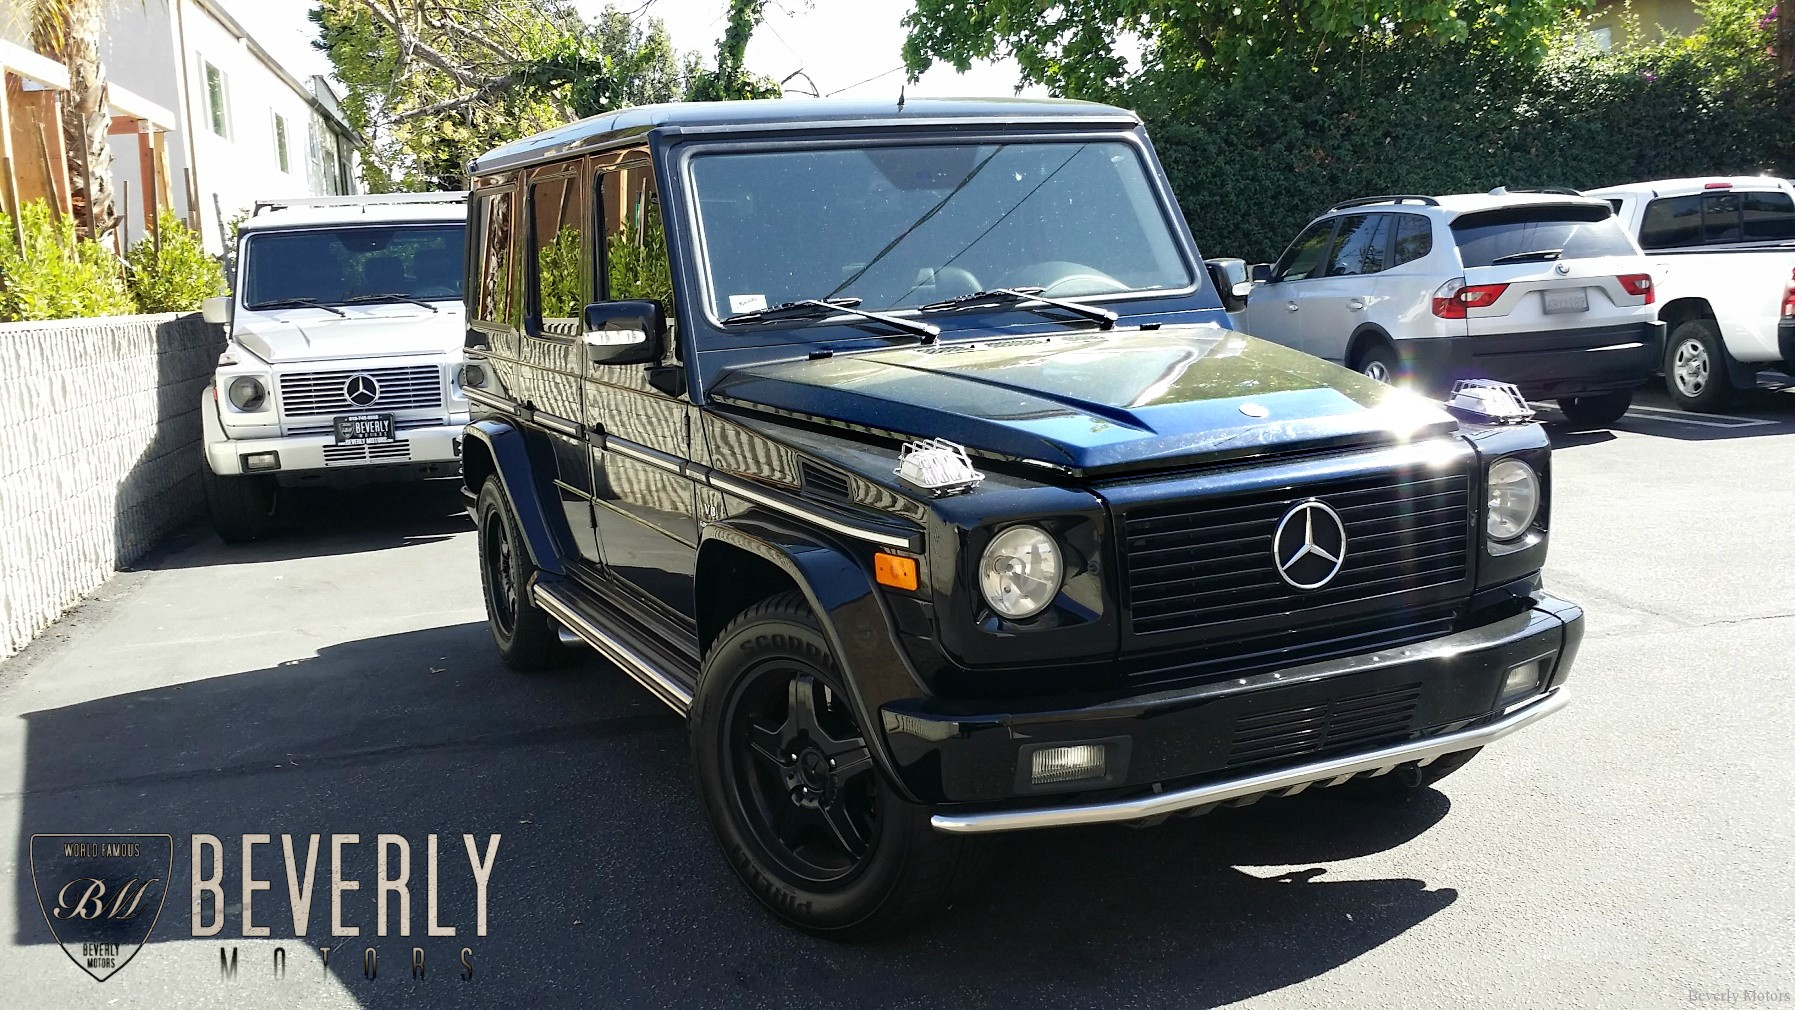 Beverly motors inc glendale auto leasing and sales new for Mercedes benz amg wagon for sale